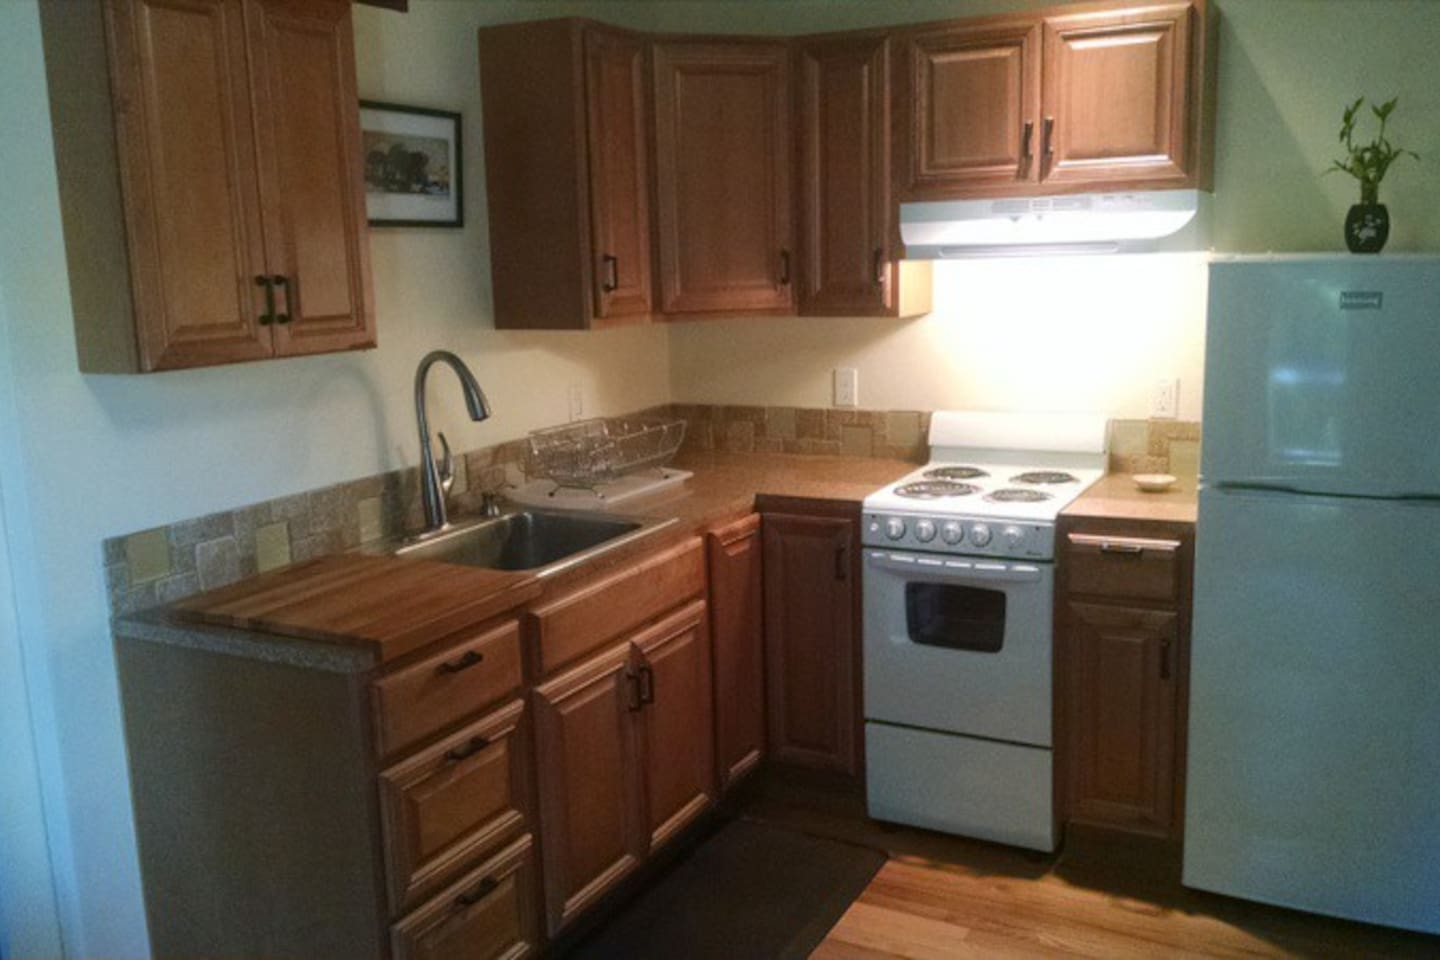 Well equiped efficient kitchen provides everything needed for home away from home.